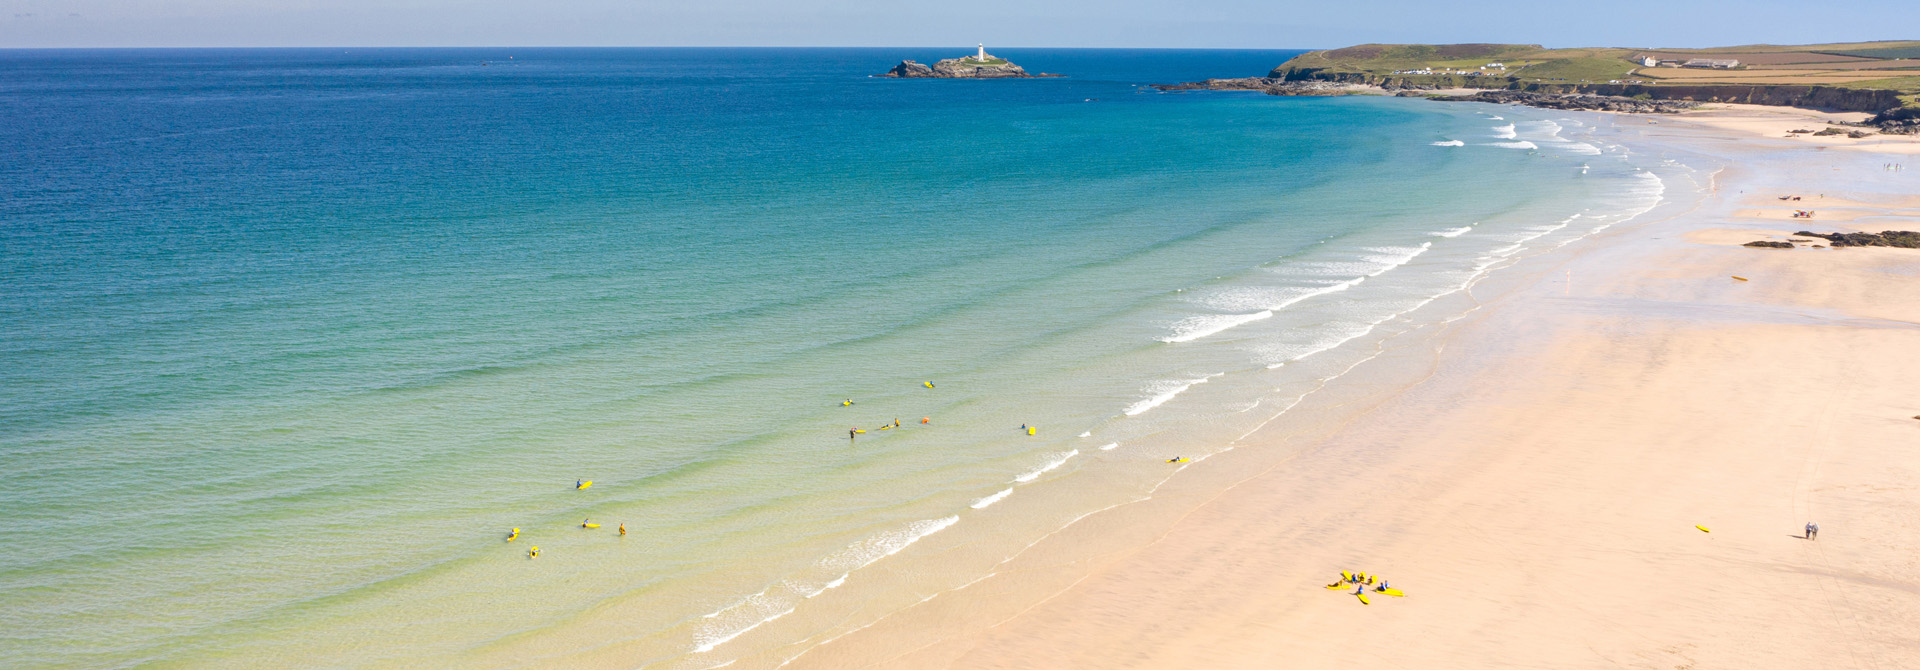 eBike Hire routes along the north coast beaches of Cornwall